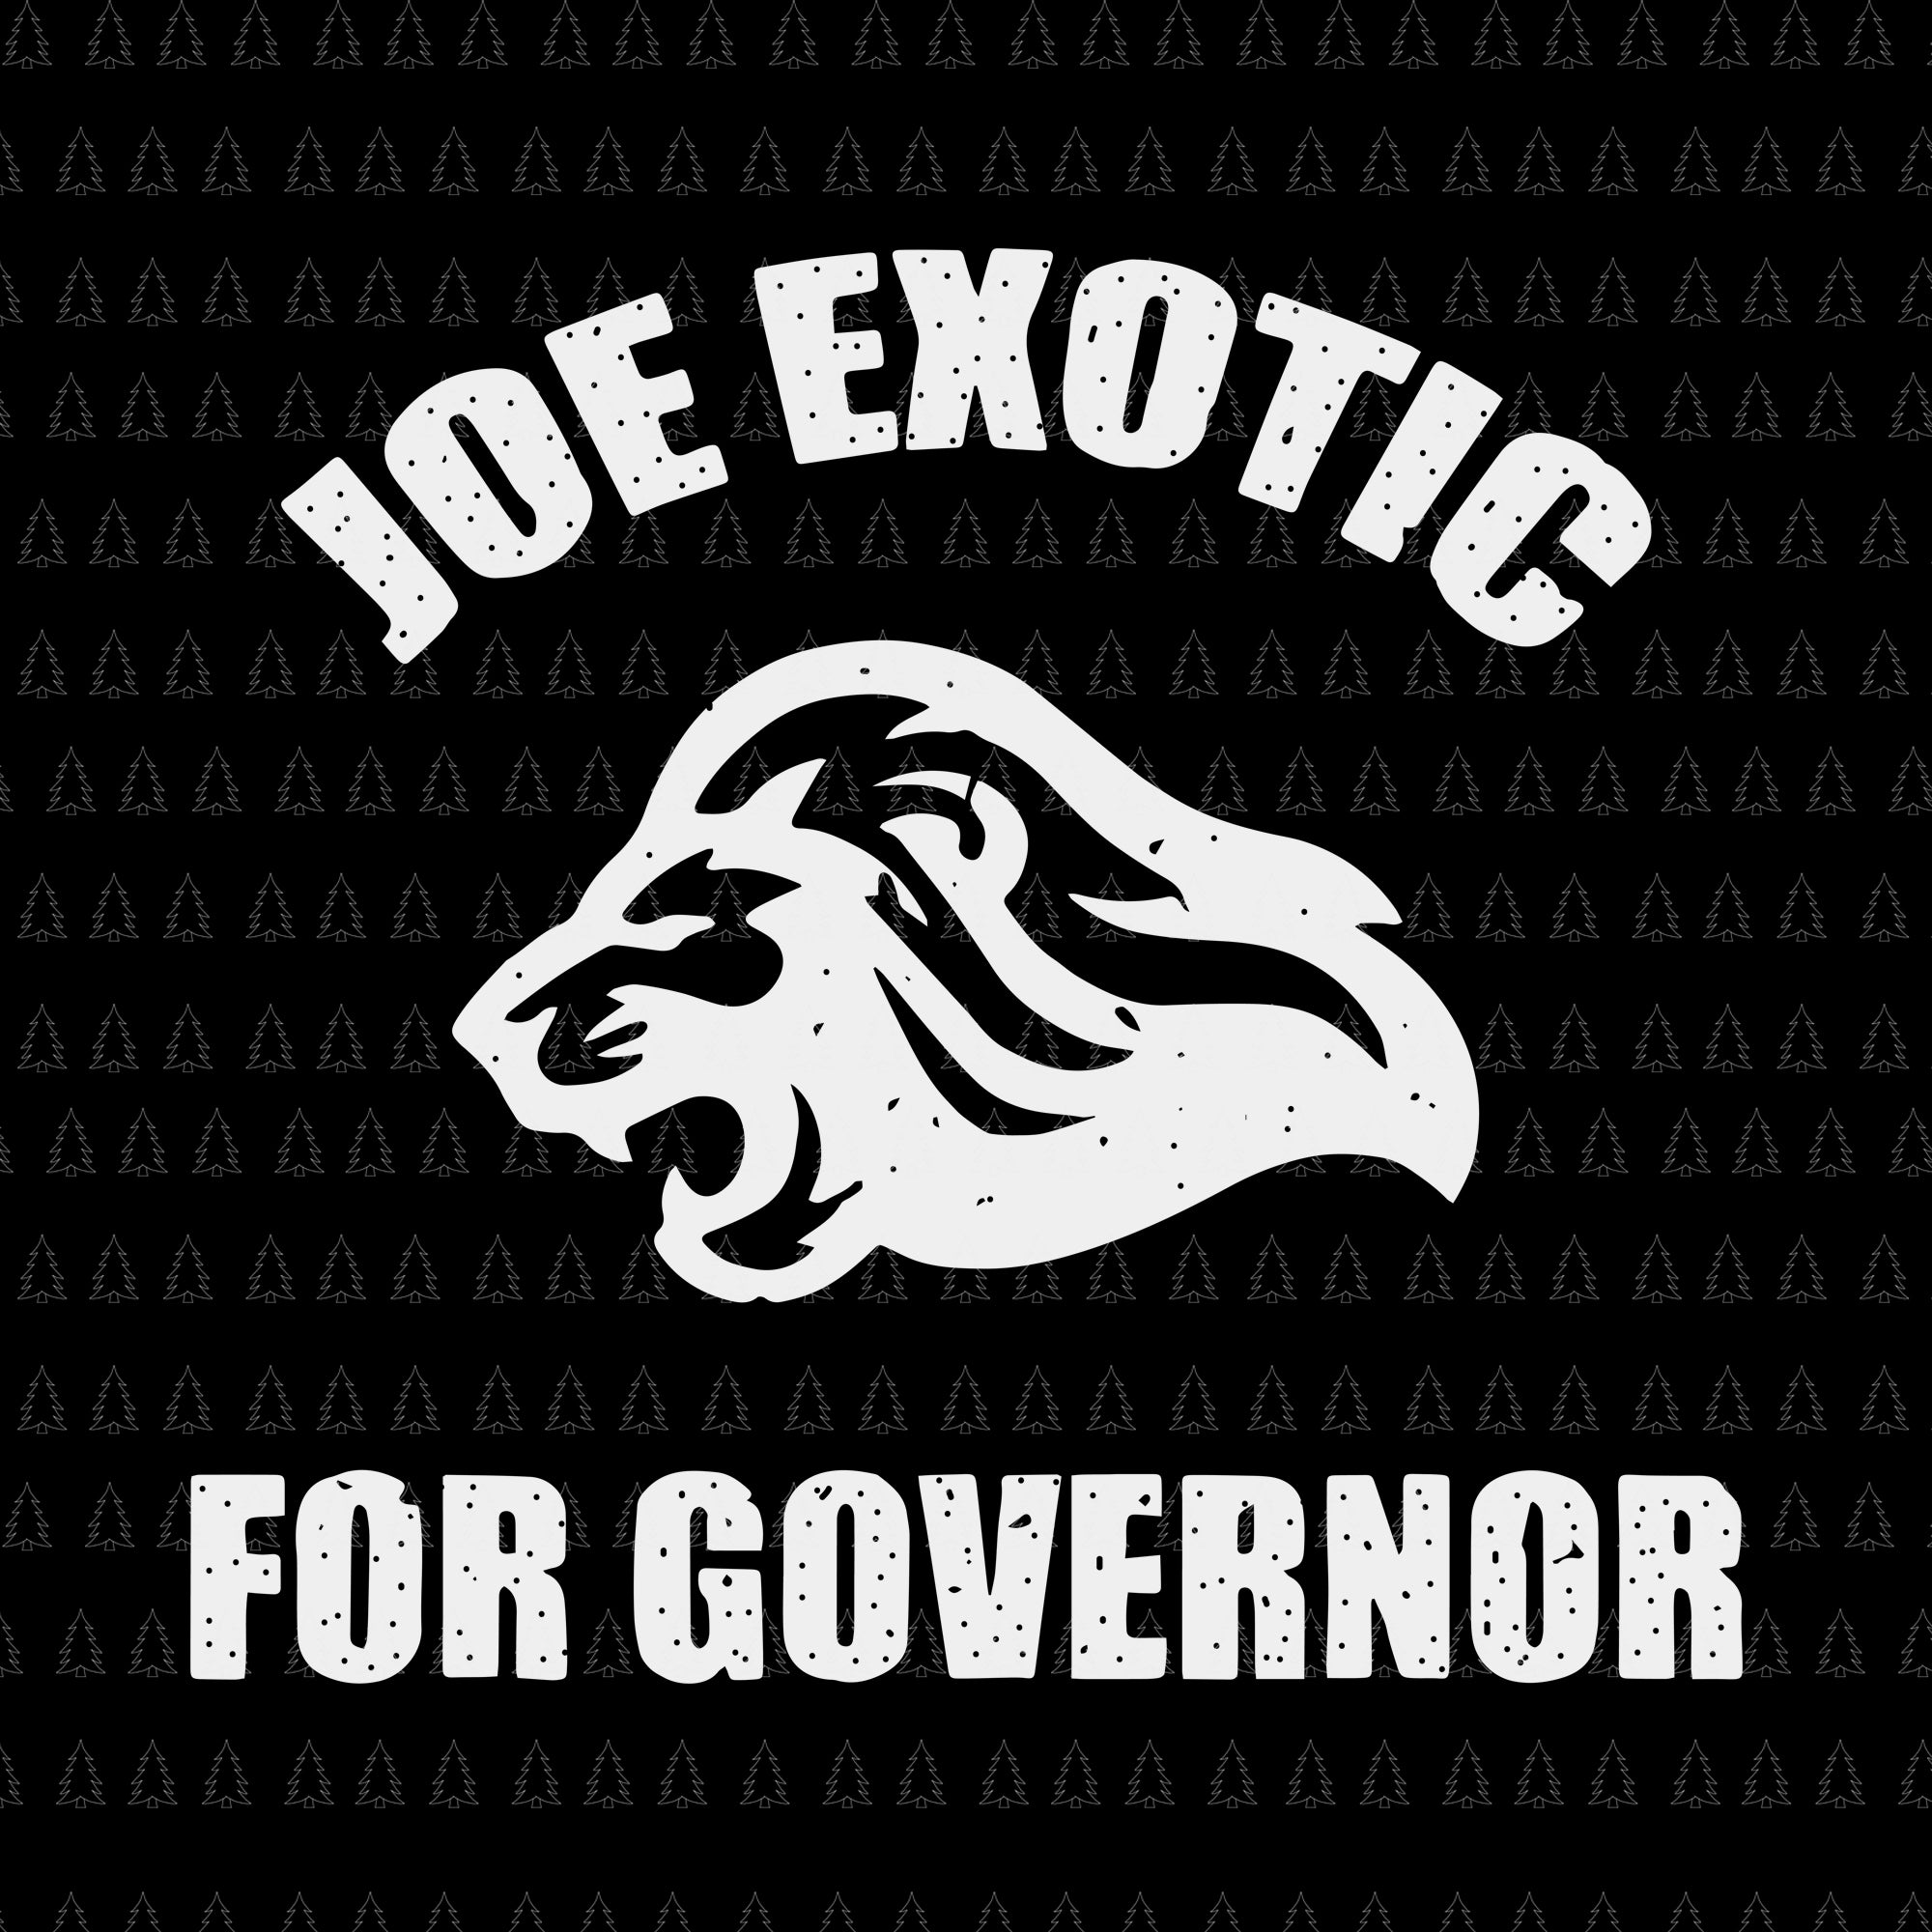 Joe exotic for governor svg, joe exotic for governor, joe exotic for governor png, joe exotic for governor